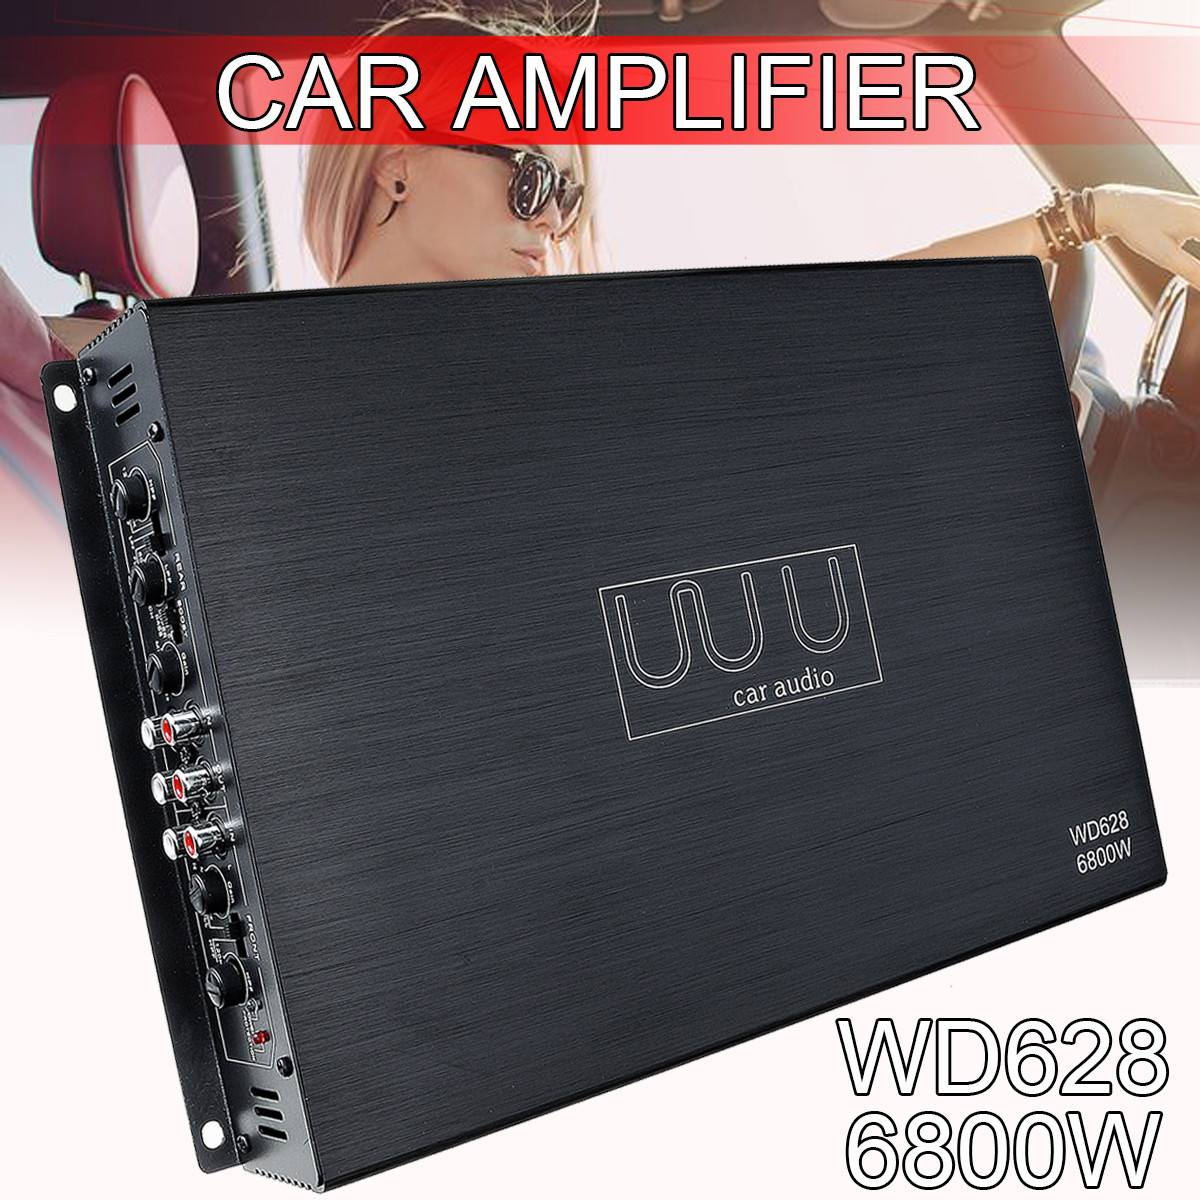 DC 12V 6800 Watt 4 Channel Car Amplifier Audio Stereo Bass Speaker Car Audio Amplifiers Subwoofer Car Audio Amplifiers-in Multichannel Amplifiers from Automobiles & Motorcycles